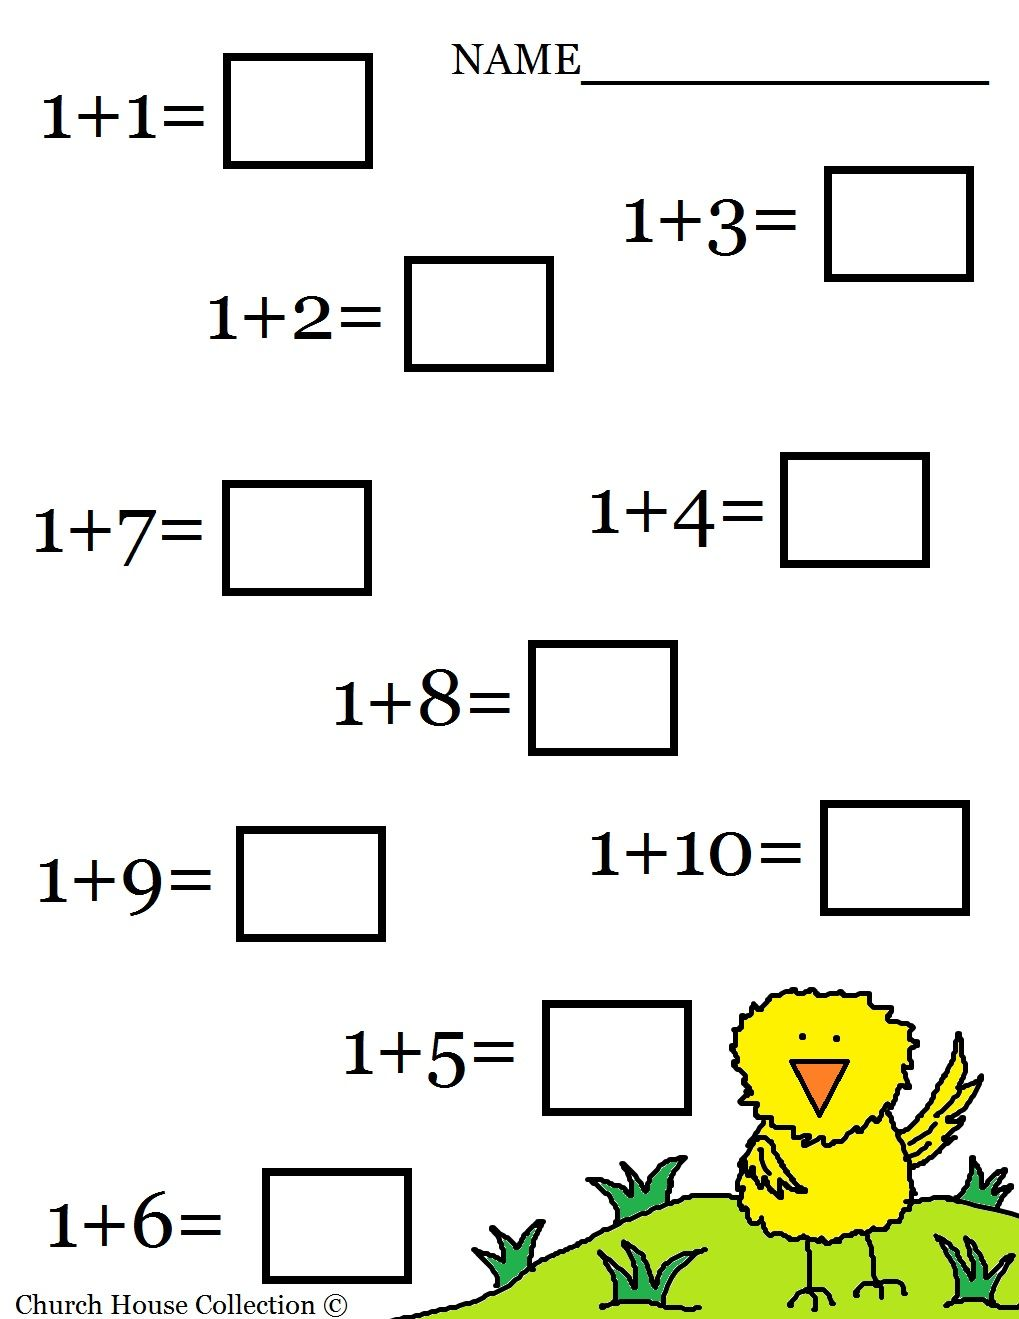 Aldiablosus  Surprising  Images About Worksheets  Math On Pinterest  Math Sheets  With Fair  Images About Worksheets  Math On Pinterest  Math Sheets Math Worksheets For Kindergarten And Simple Addition With Amusing Contractions Worksheets For First Grade Also Simple Equivalent Fractions Worksheet In Addition Algebraic Equations Worksheets For Th Grade And Characteristics Of Animals Worksheet As Well As Alphabet Letter Worksheet Additionally Science Reading Comprehension Worksheets High School From Pinterestcom With Aldiablosus  Fair  Images About Worksheets  Math On Pinterest  Math Sheets  With Amusing  Images About Worksheets  Math On Pinterest  Math Sheets Math Worksheets For Kindergarten And Simple Addition And Surprising Contractions Worksheets For First Grade Also Simple Equivalent Fractions Worksheet In Addition Algebraic Equations Worksheets For Th Grade From Pinterestcom